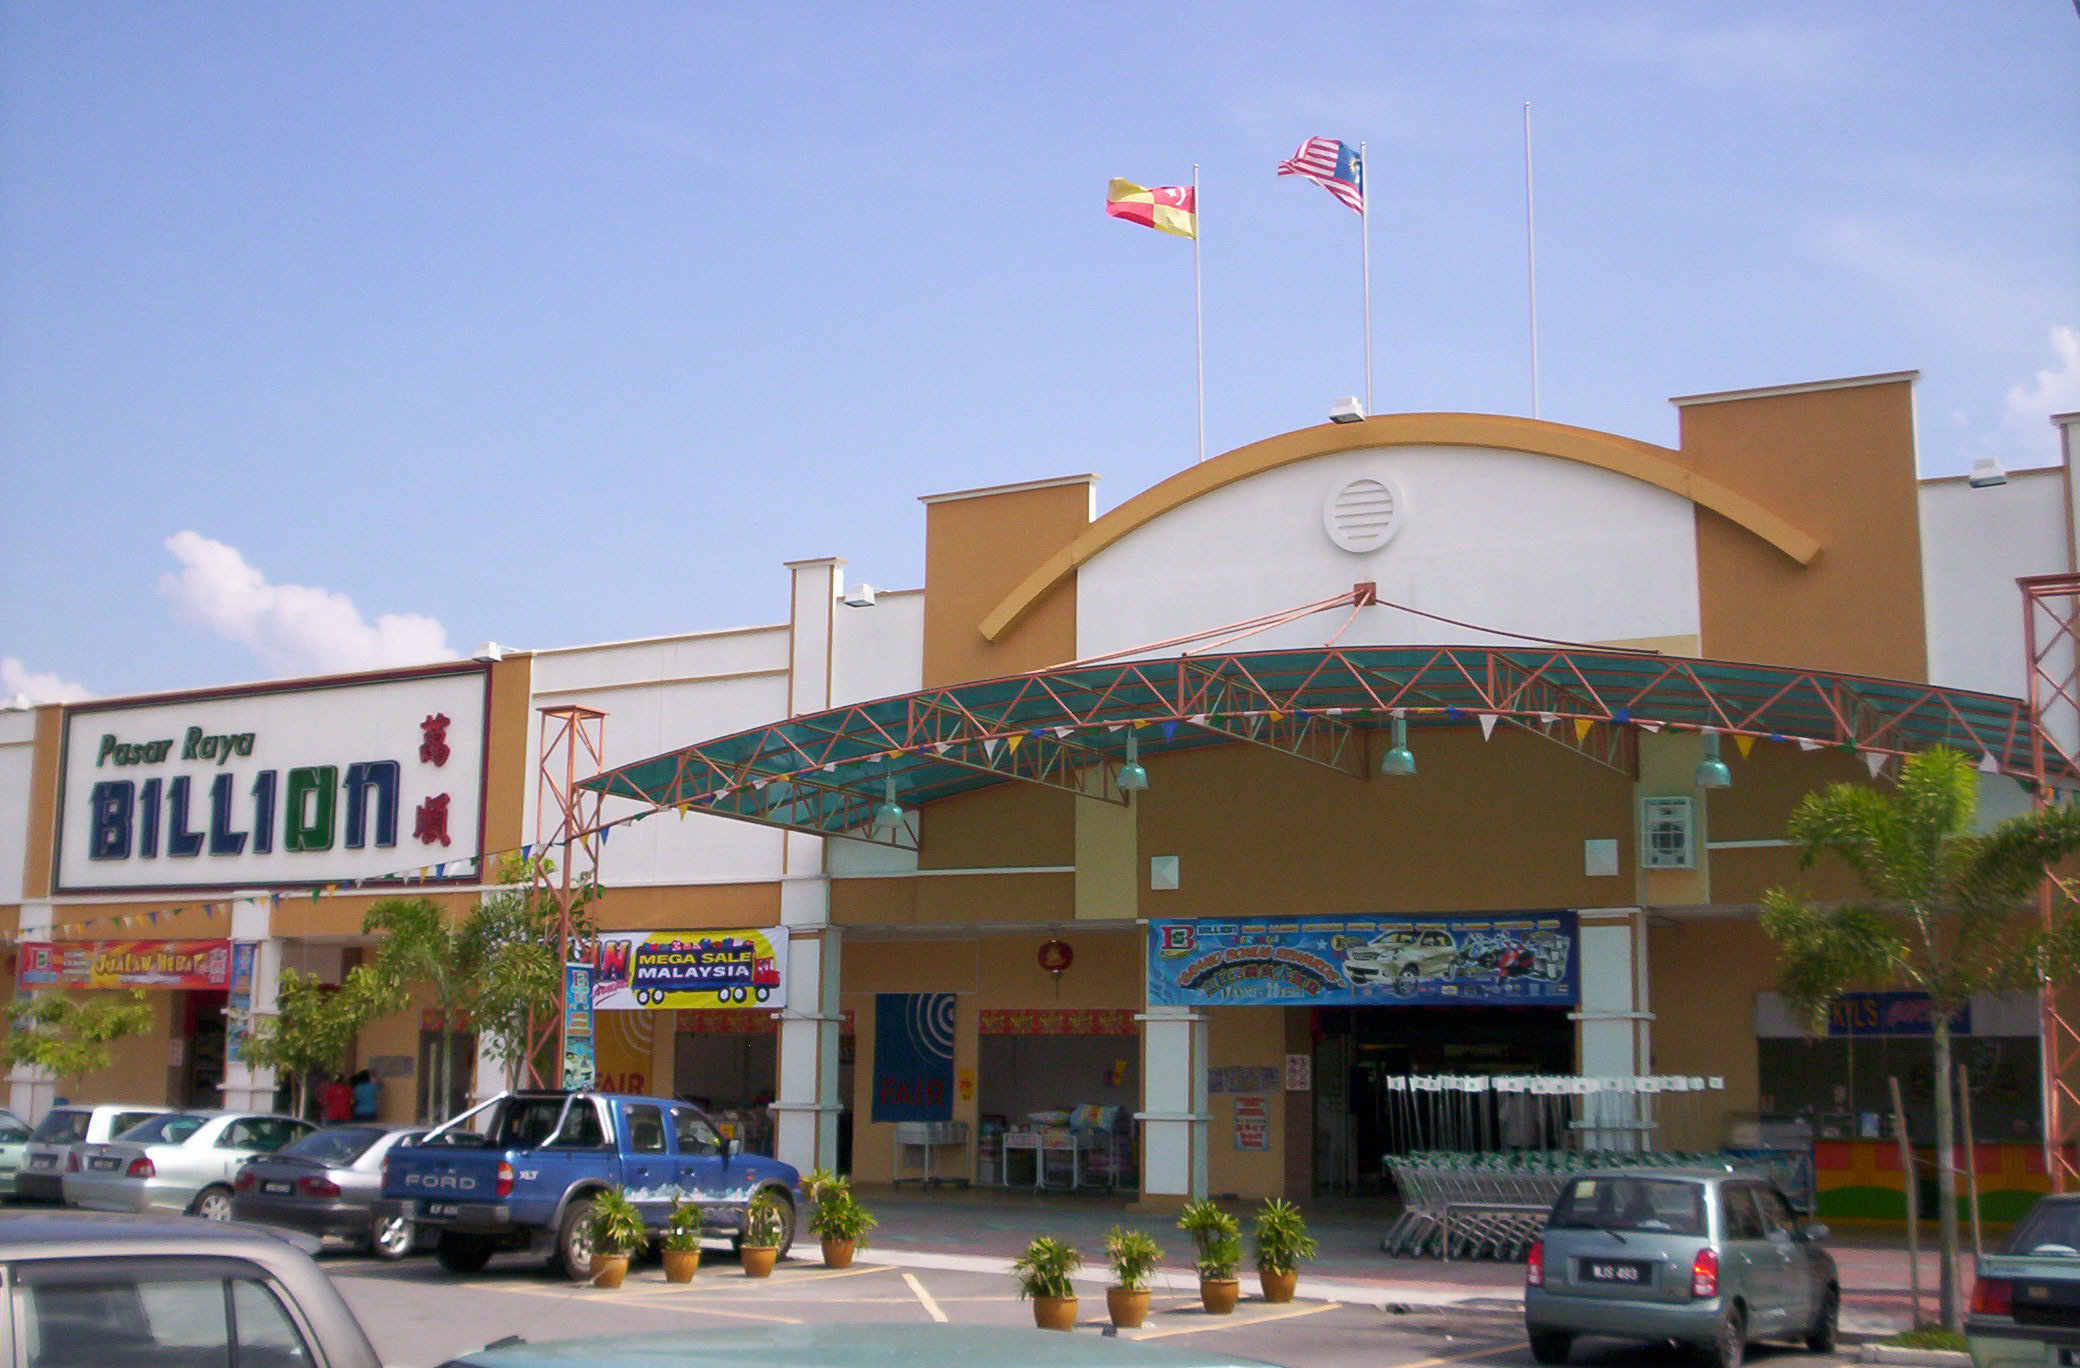 General View to Billion Shopping Centre at Semenyih